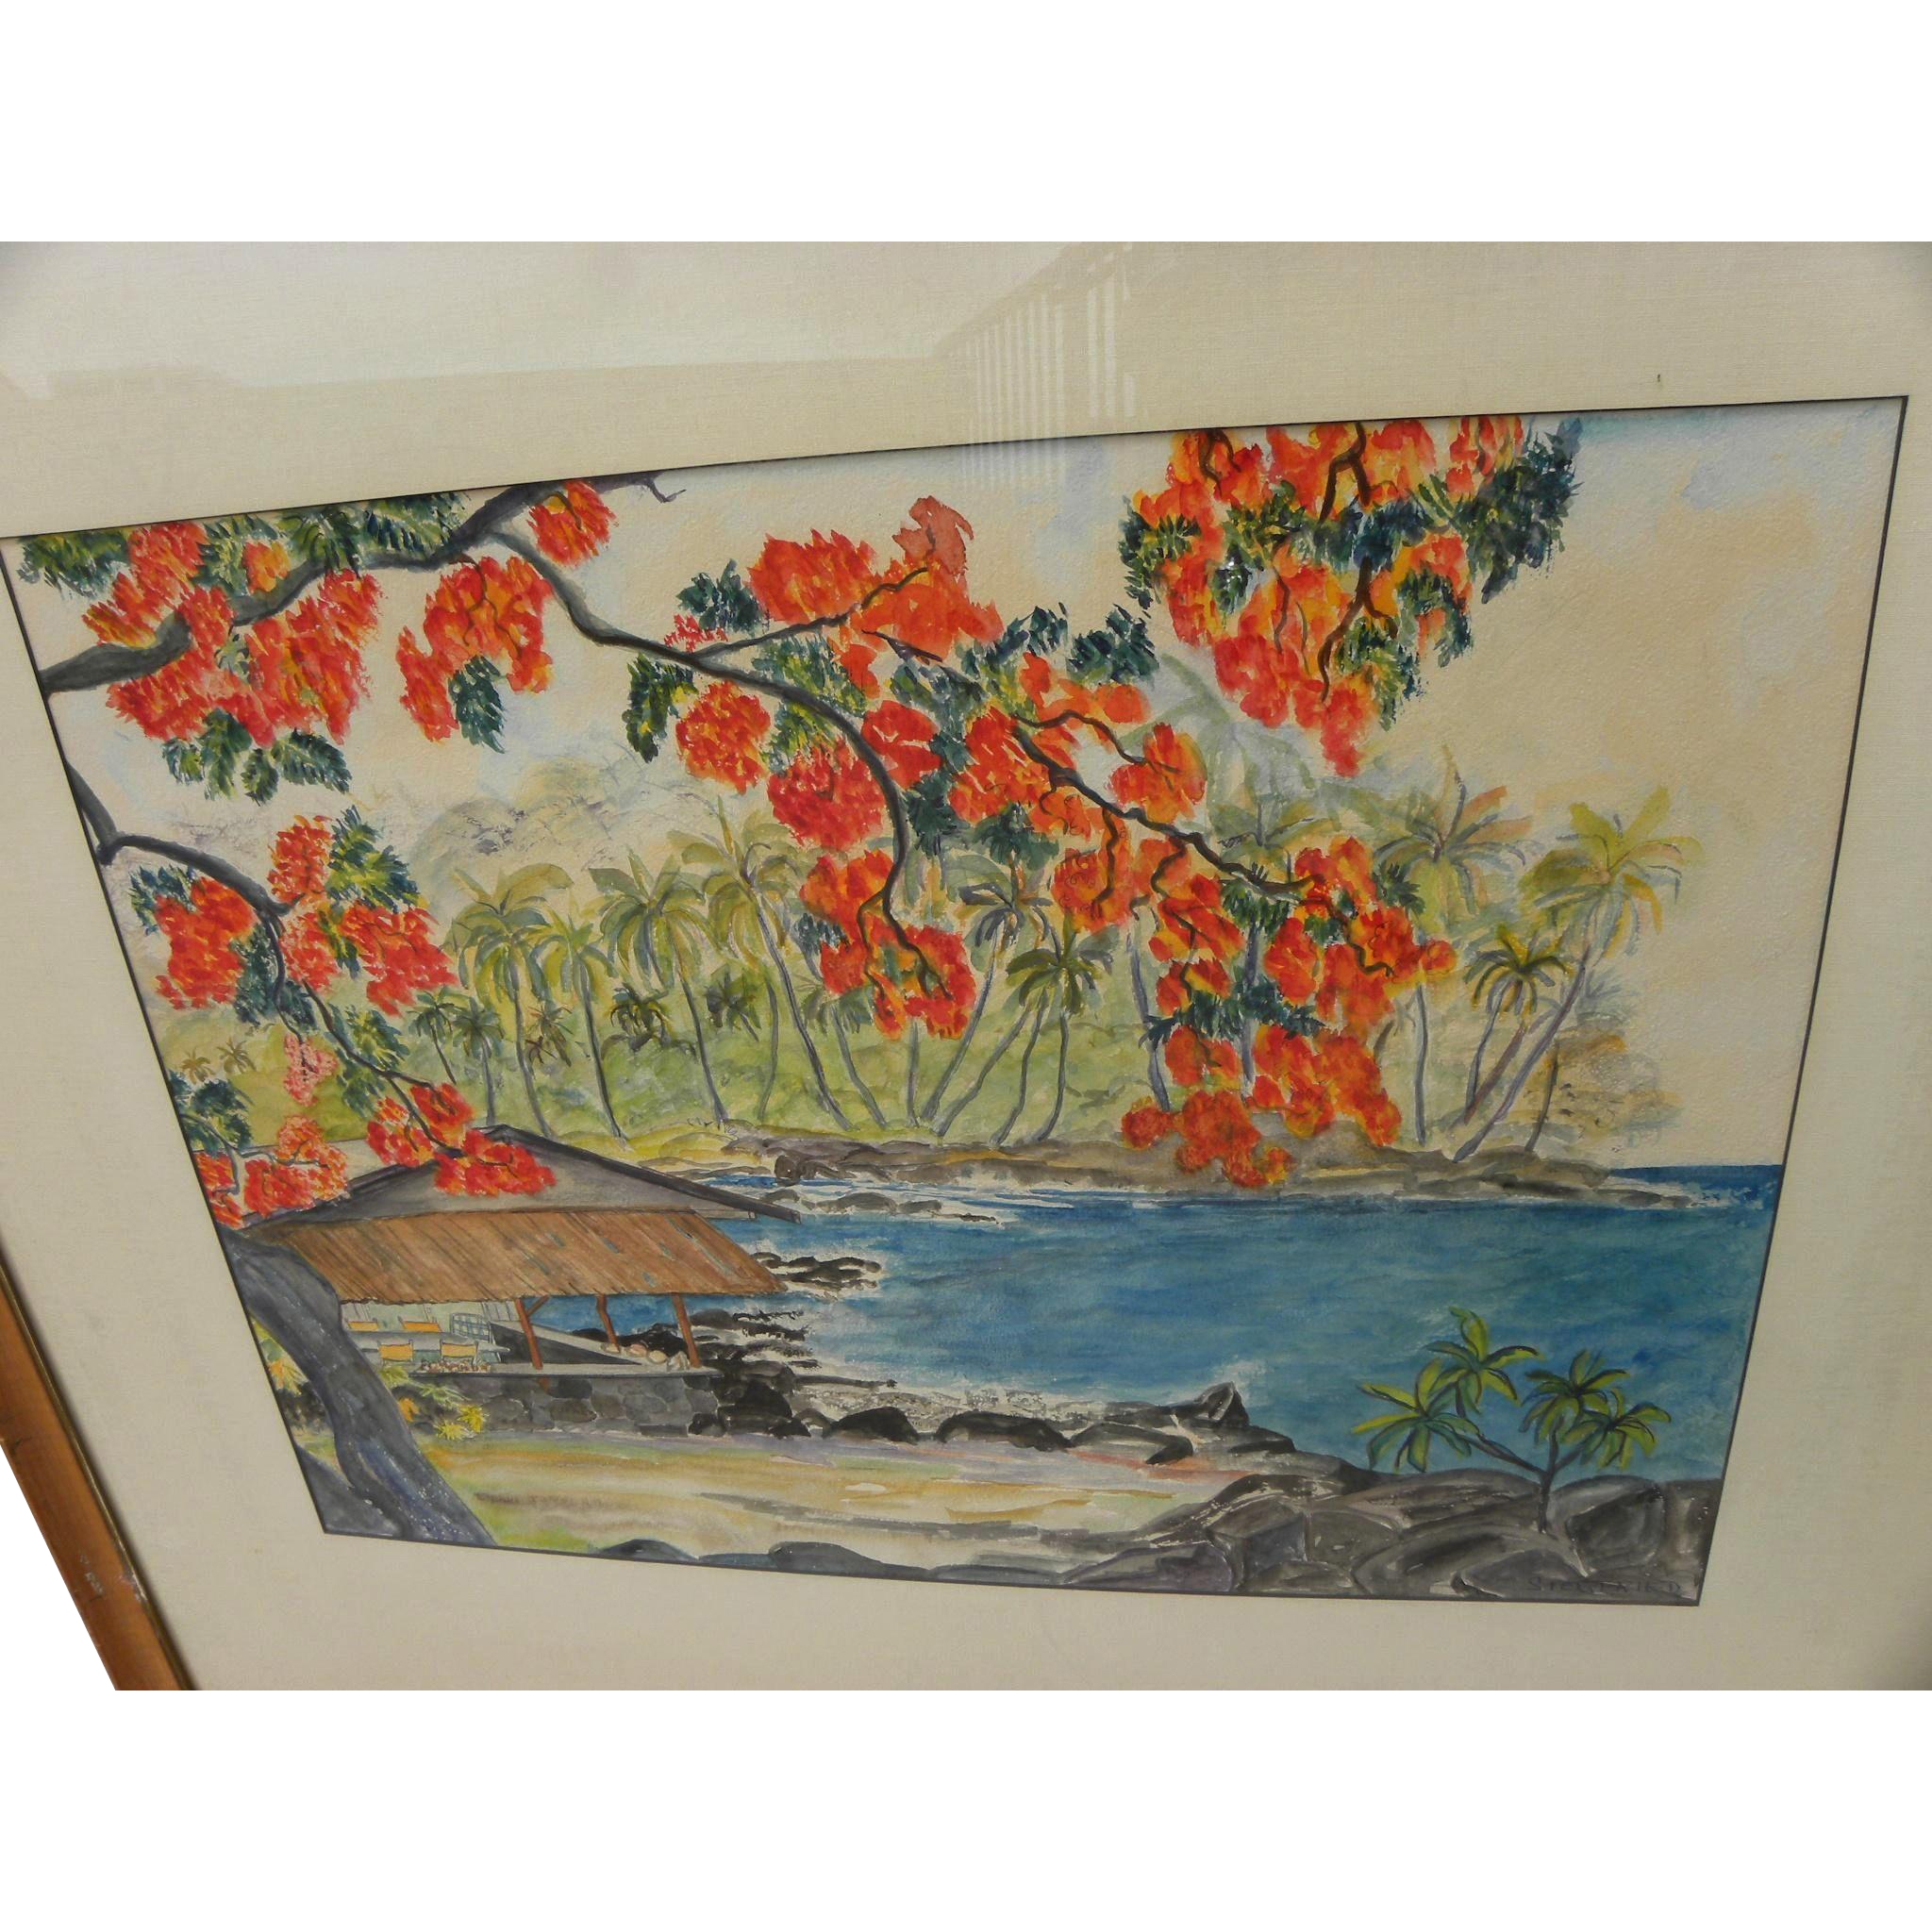 Hawaiiana mid century watercolor painting of a coastal patio with palms and poinciana